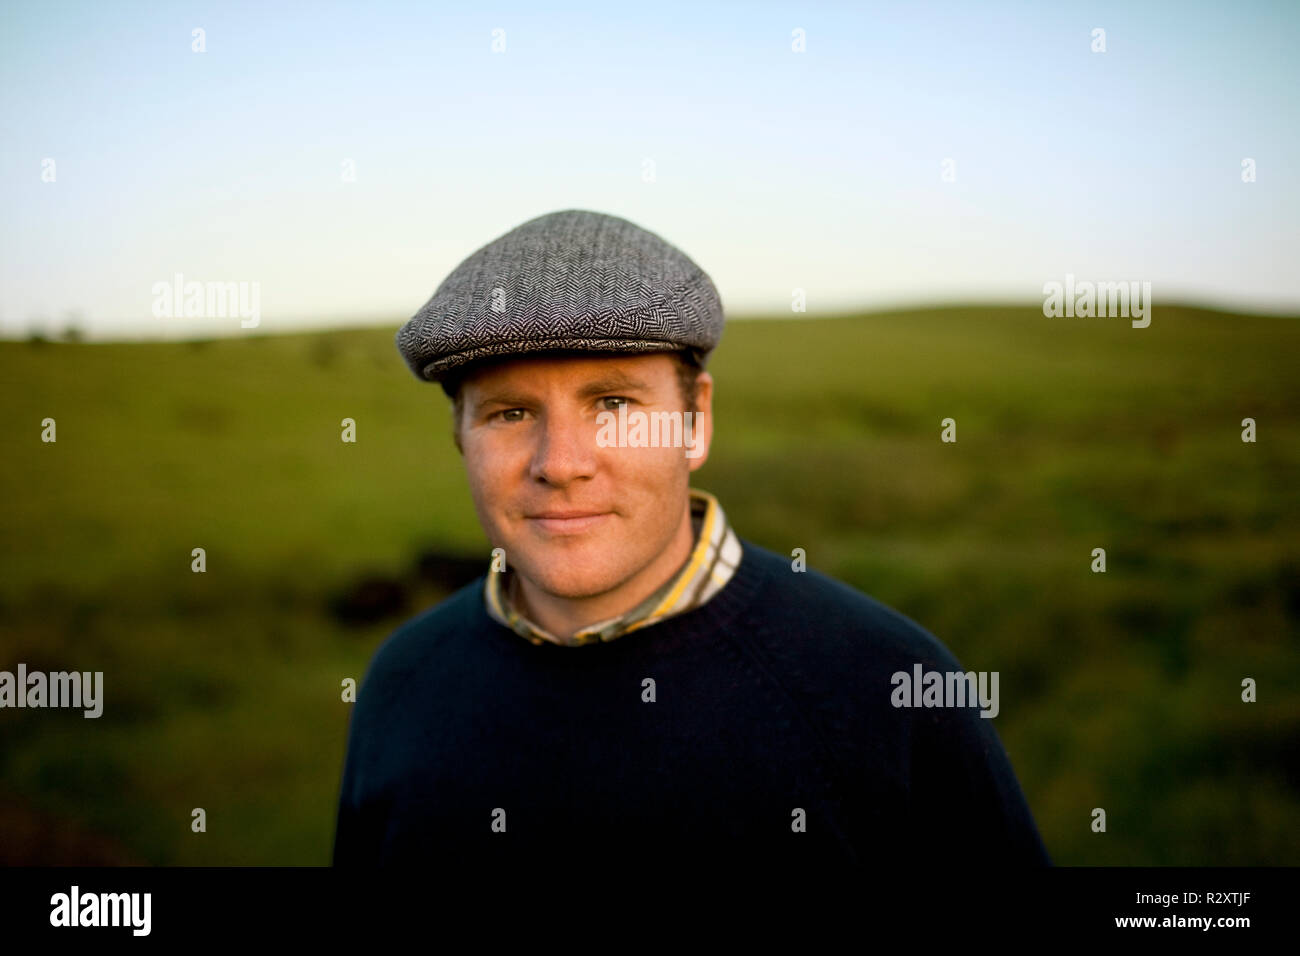 Portrait of a smiling mid-adult farmer wearing a tweed cap. - Stock Image